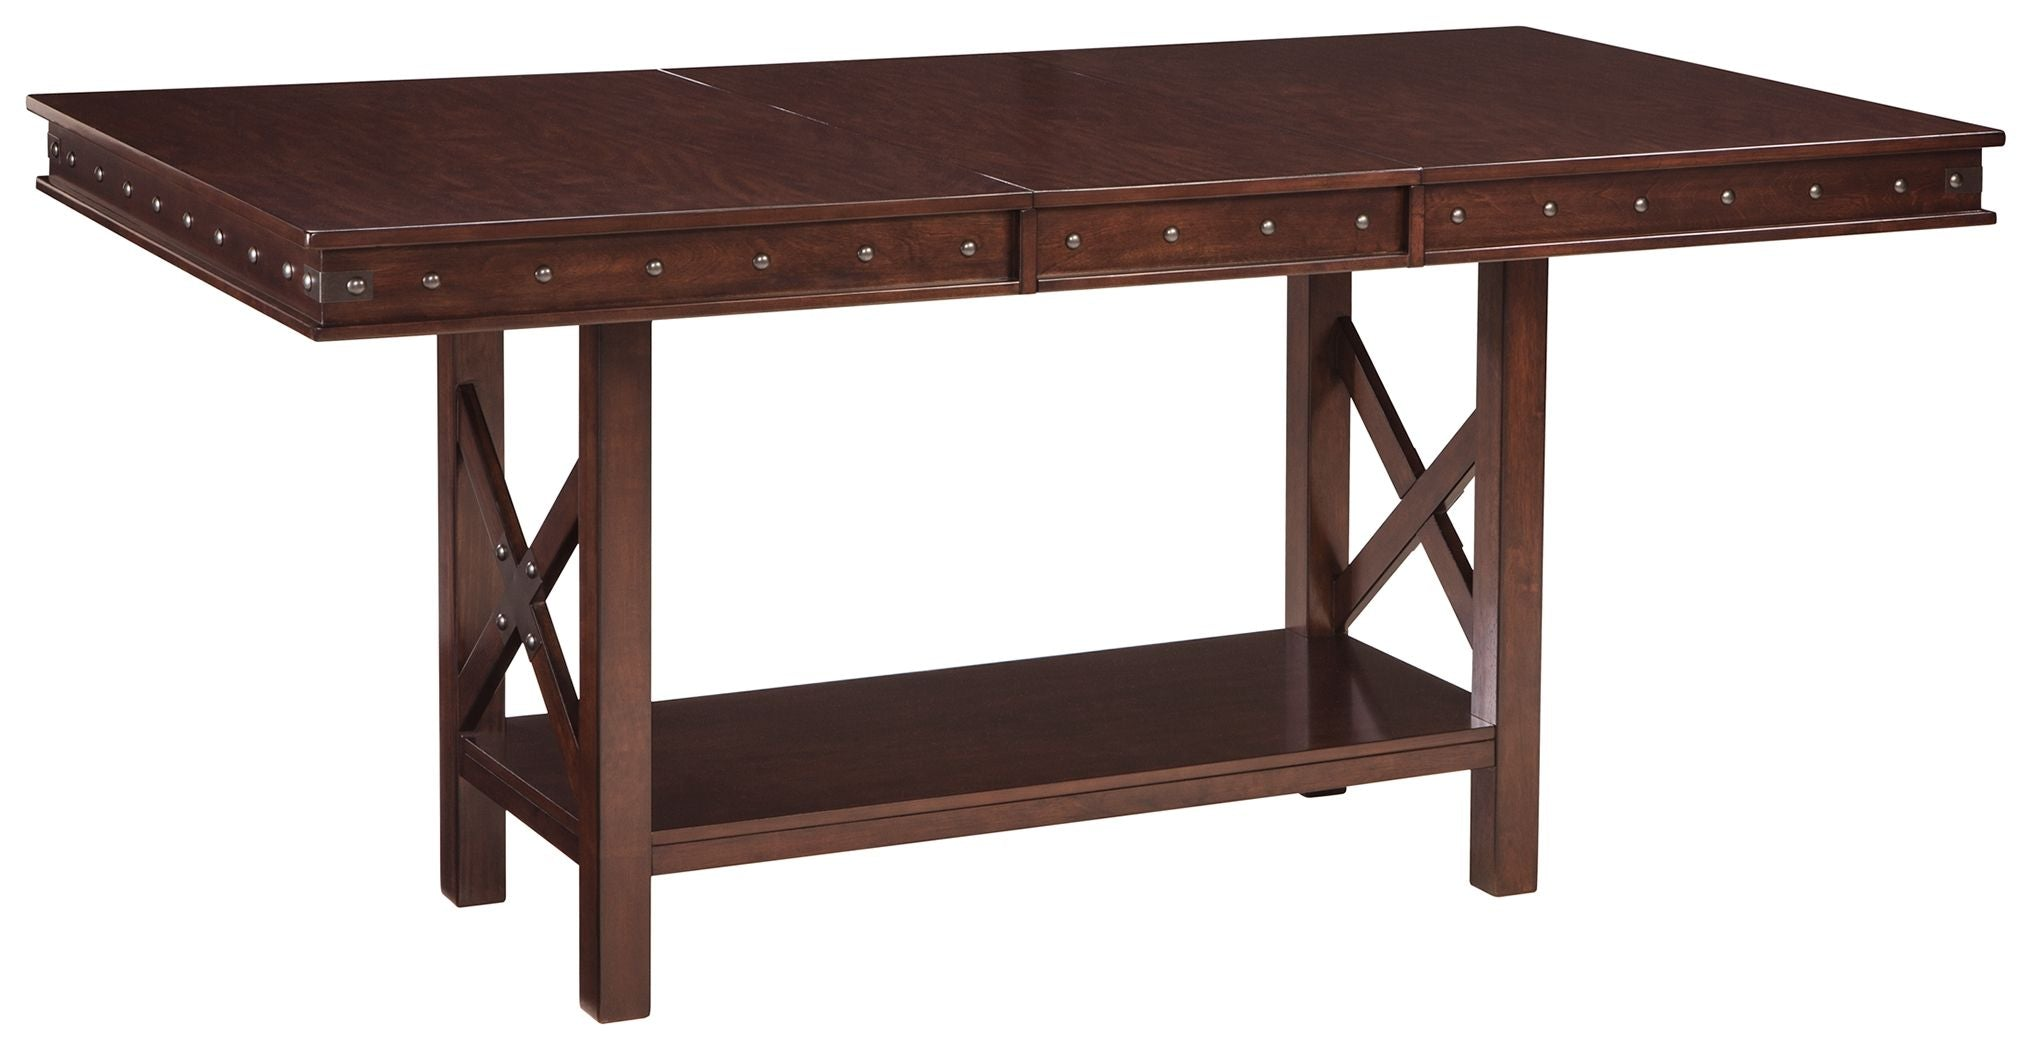 Collenburg Counter Height Dining Room Extension Table | Calgary's Furniture Store